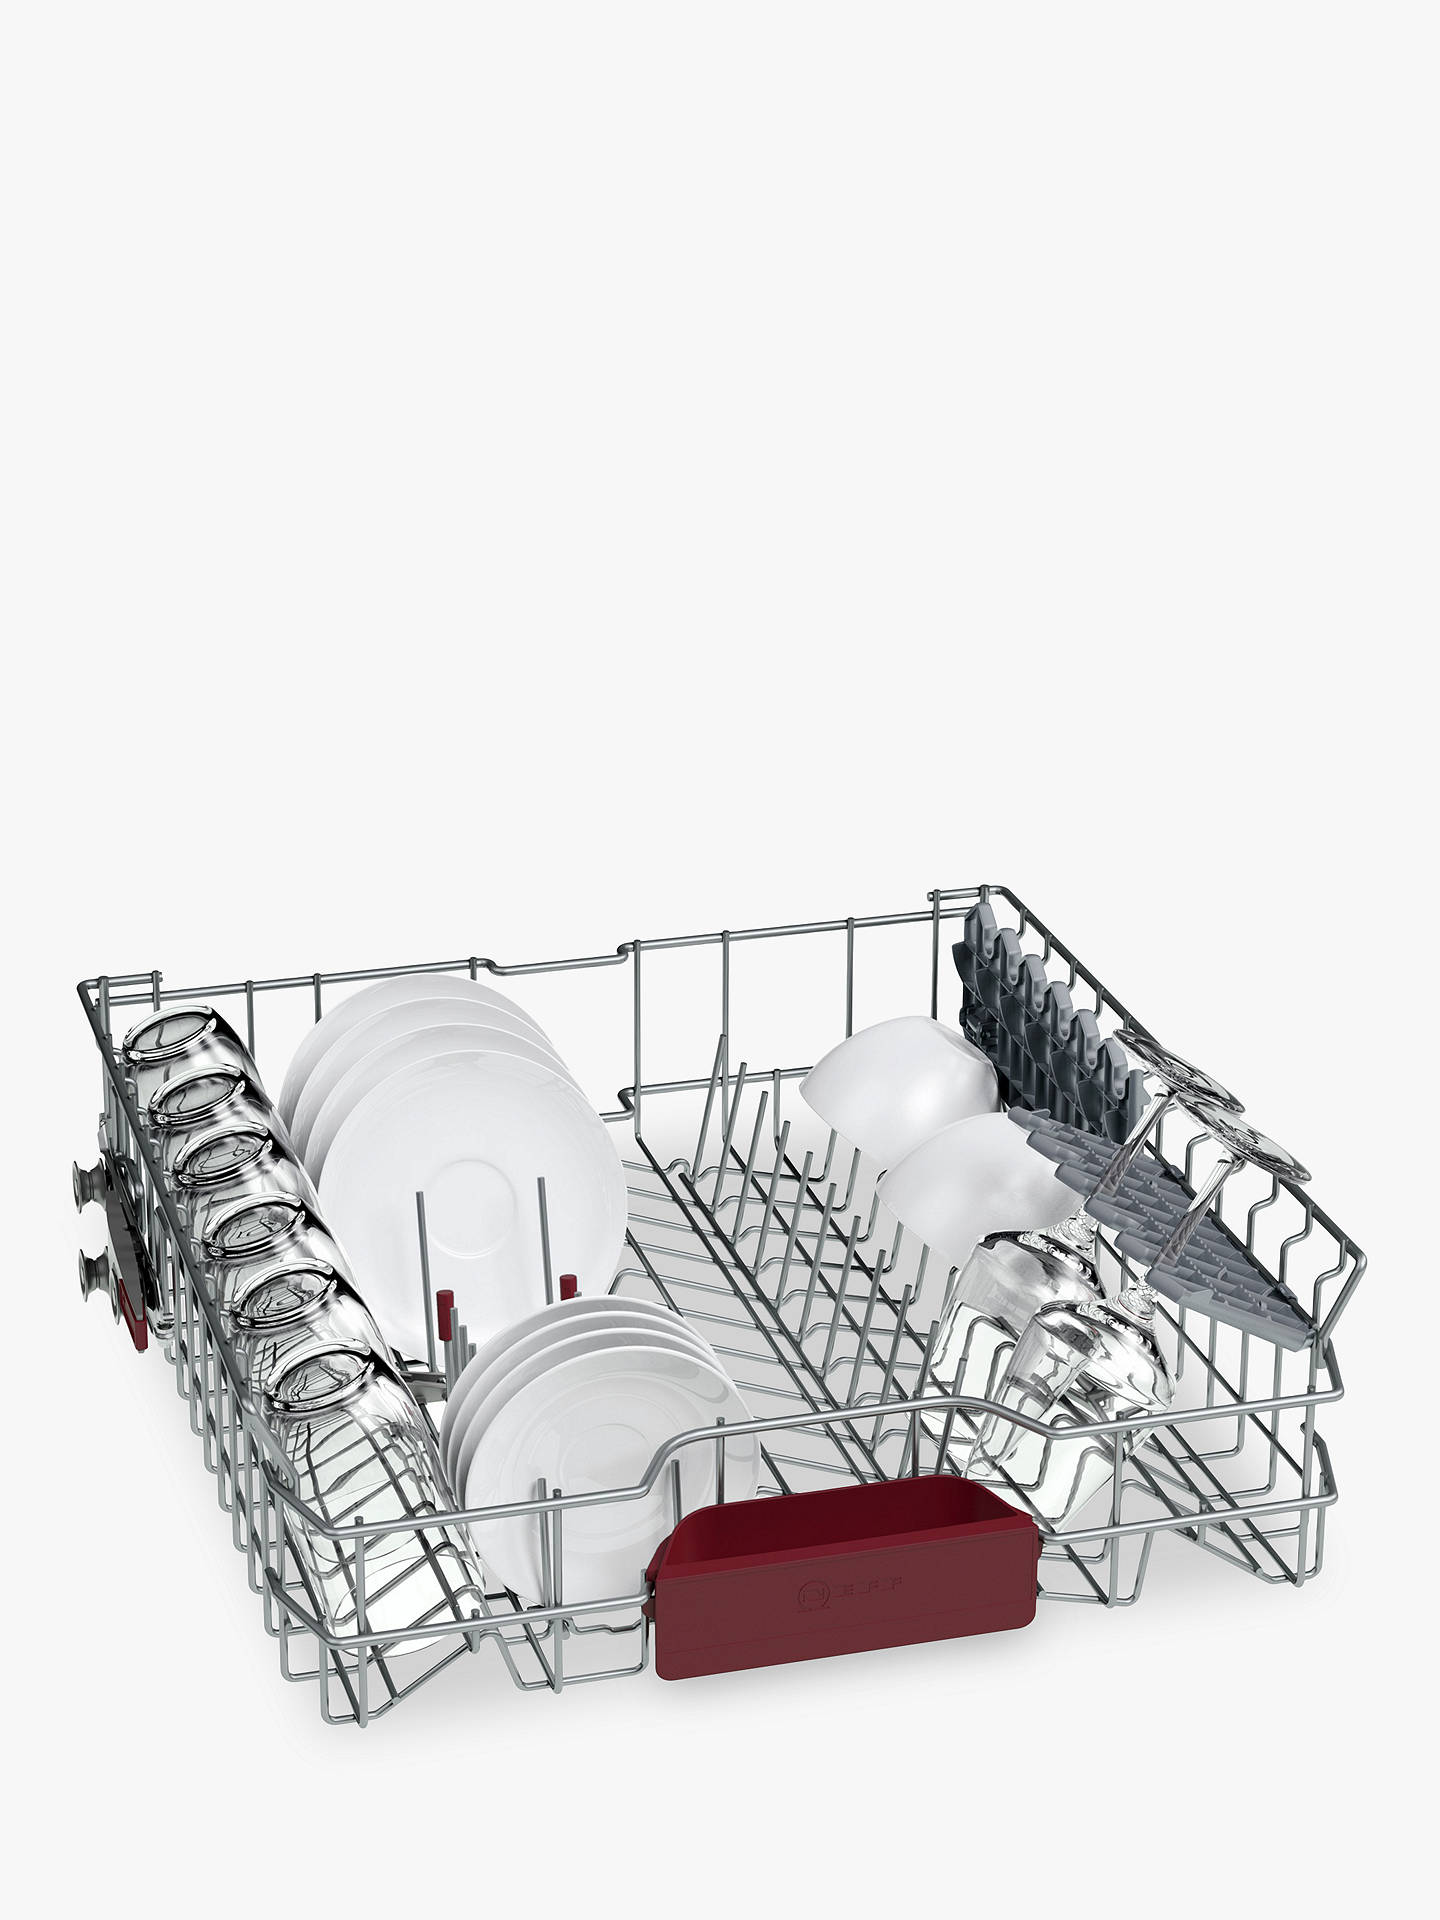 BuyNeff S513M60X1G Integrated Dishwasher, Stainless Steel Online at johnlewis.com